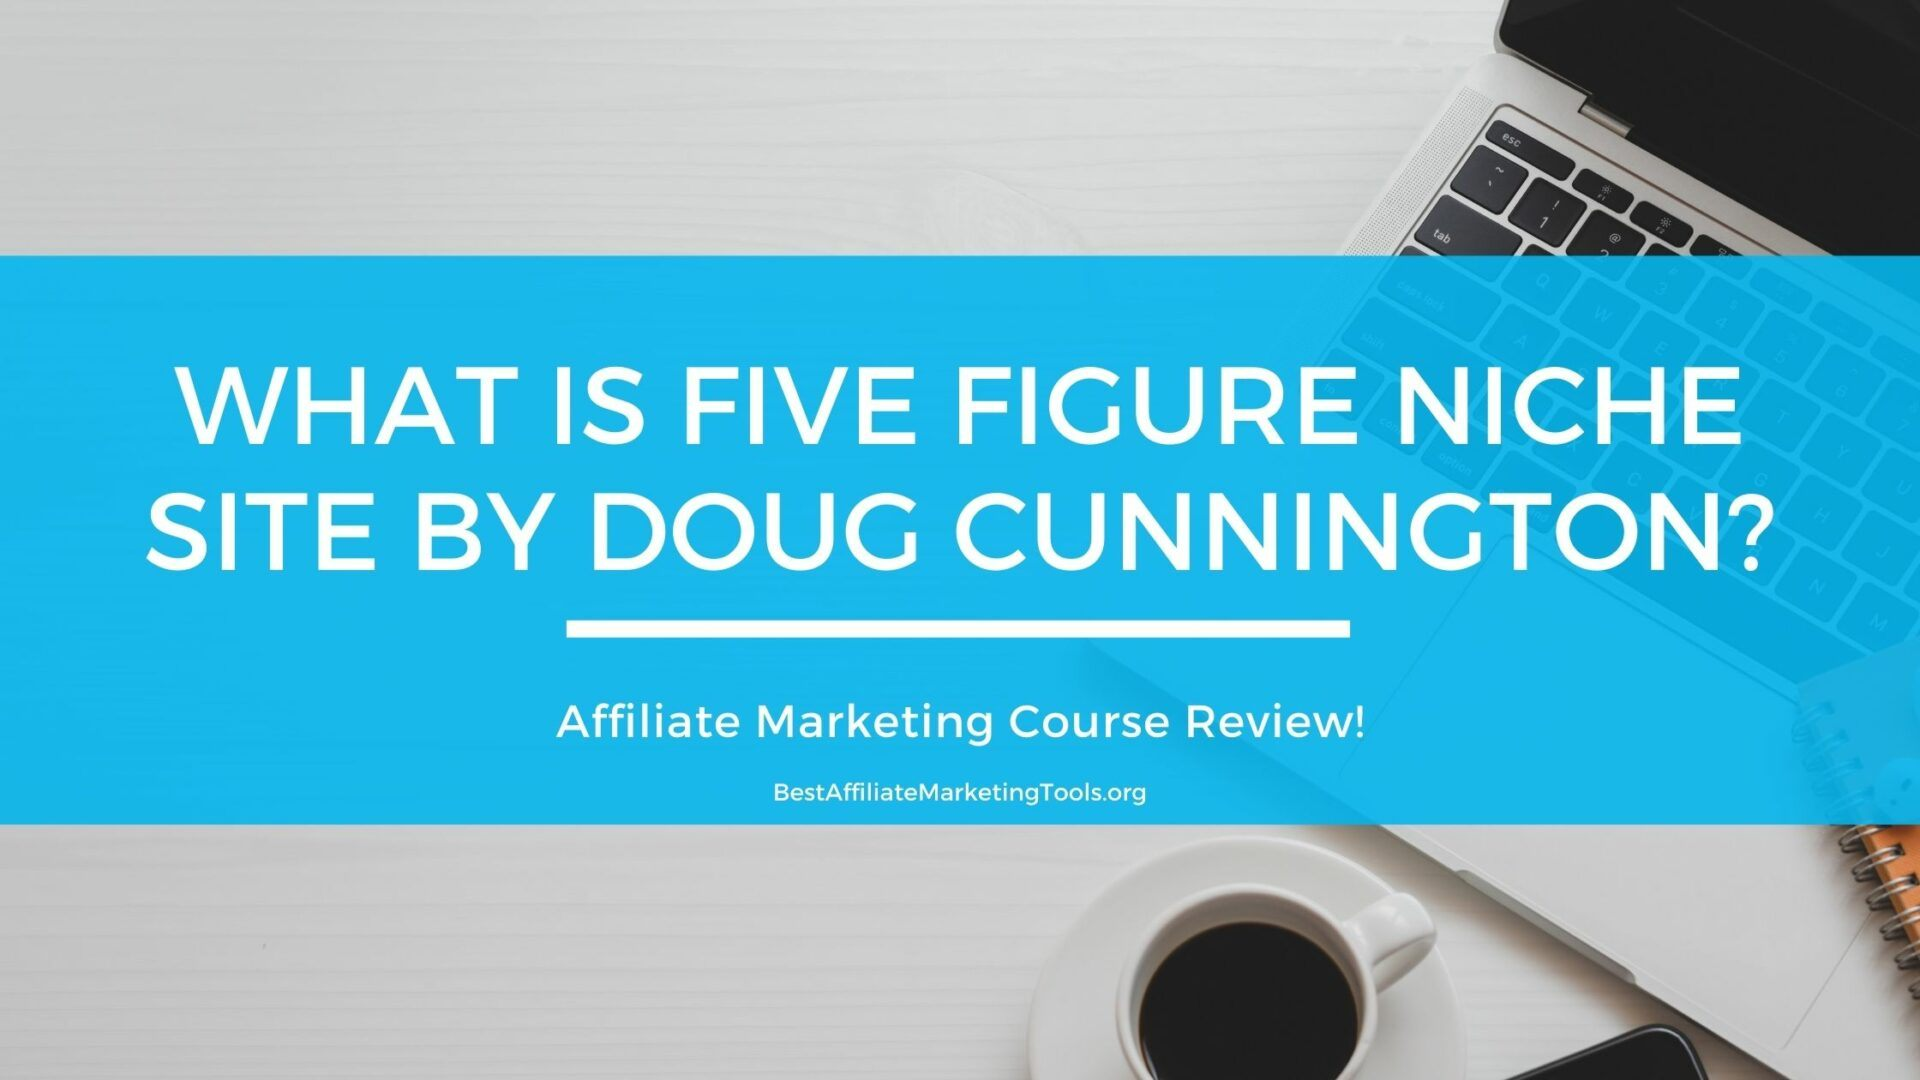 What is Five Figure Niche Site by Doug Cunnington